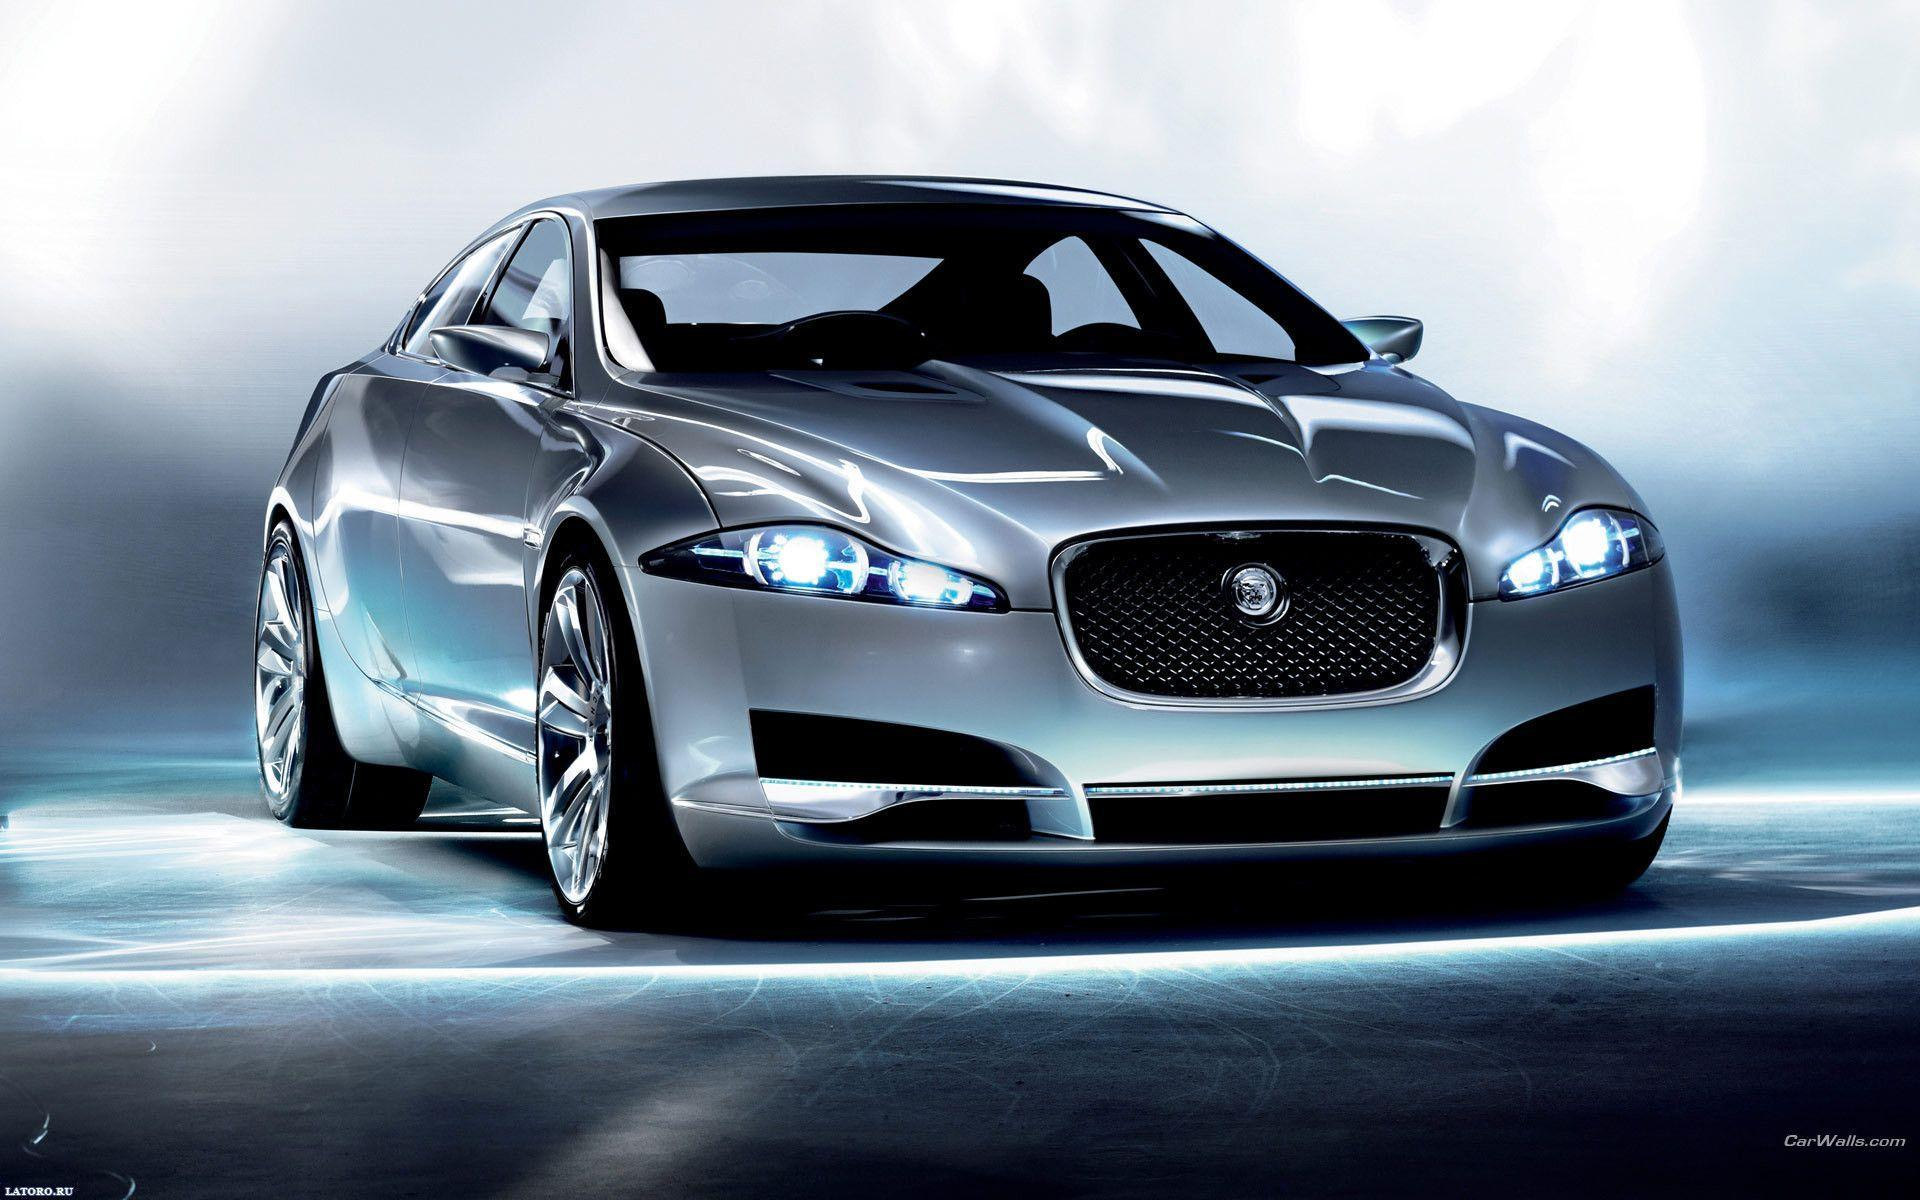 Jaguar Cars wallpaper - 318534